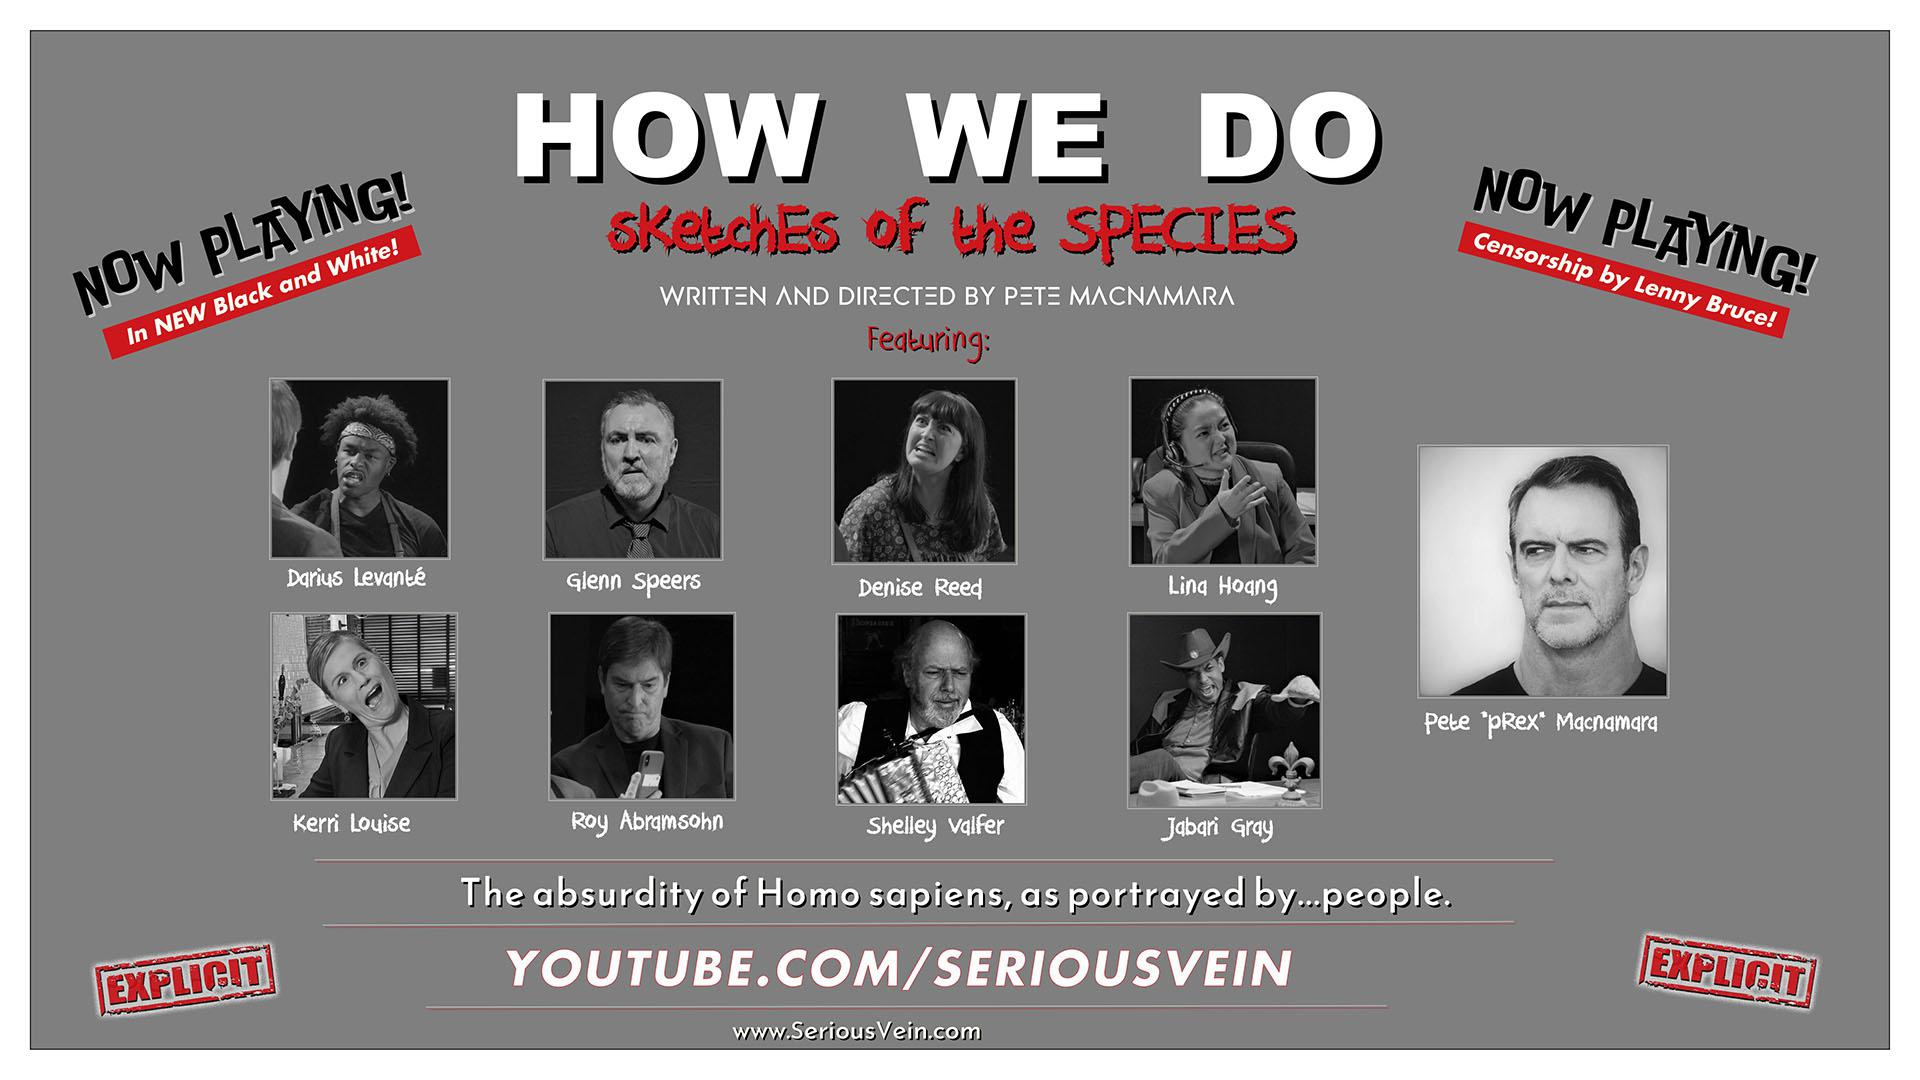 HOW WE DO (Sketches of the Species) : 3-vignette Pilot